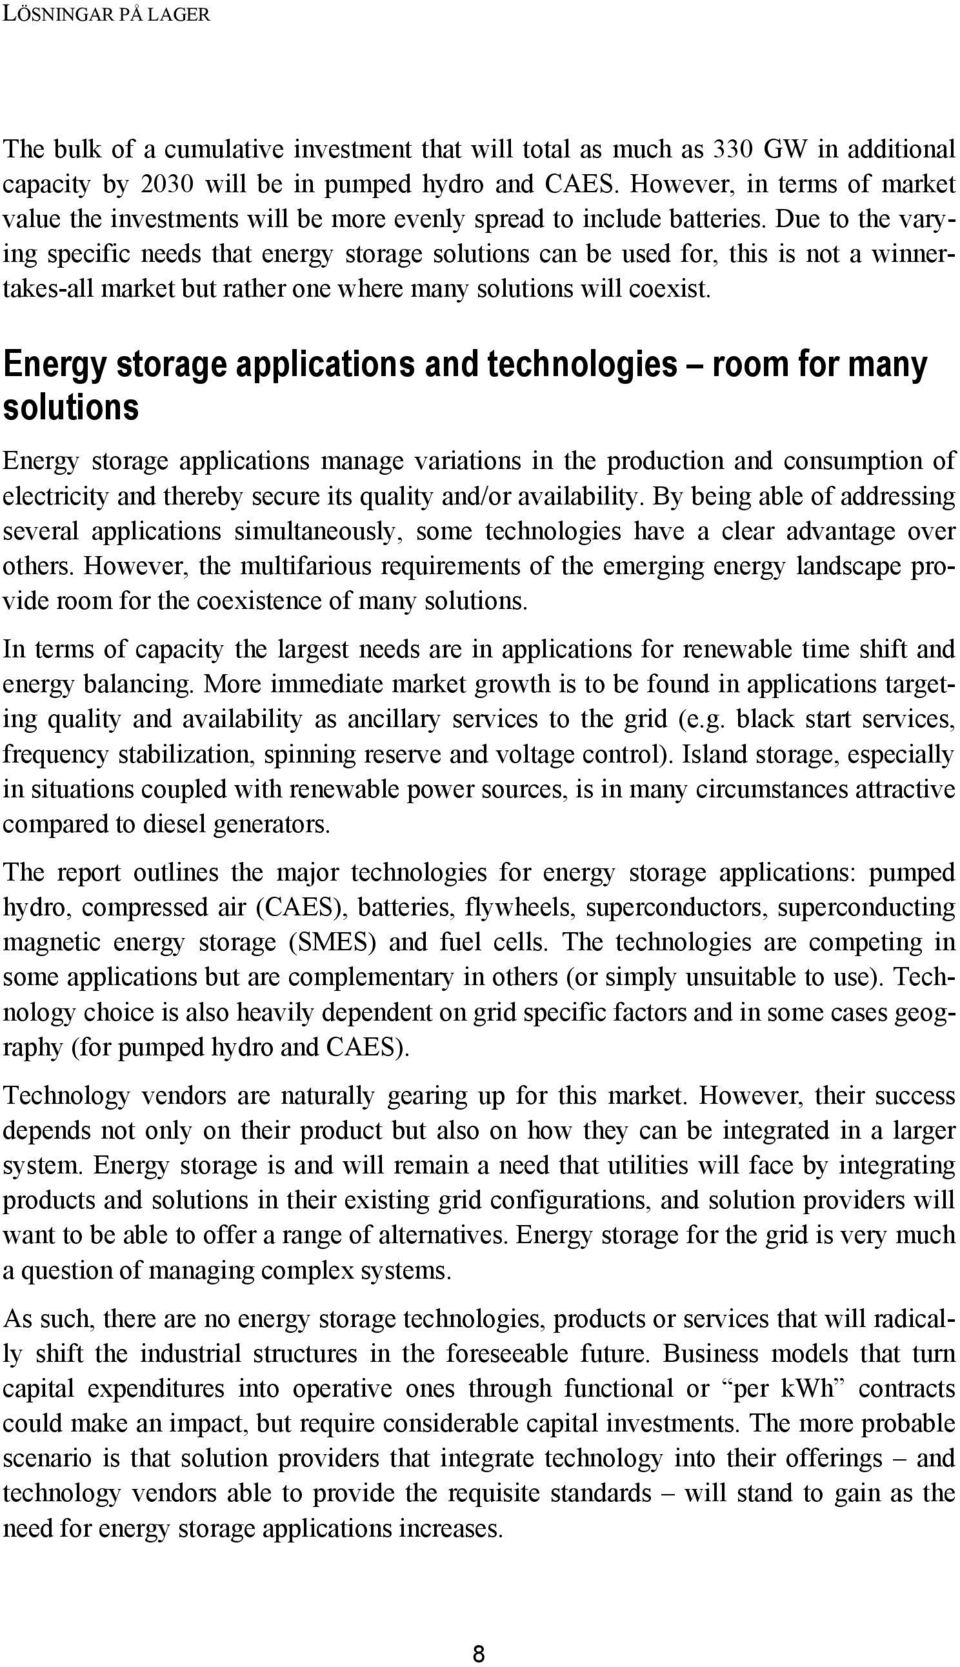 Due to the varying specific needs that energy storage solutions can be used for, this is not a winnertakes-all market but rather one where many solutions will coexist.